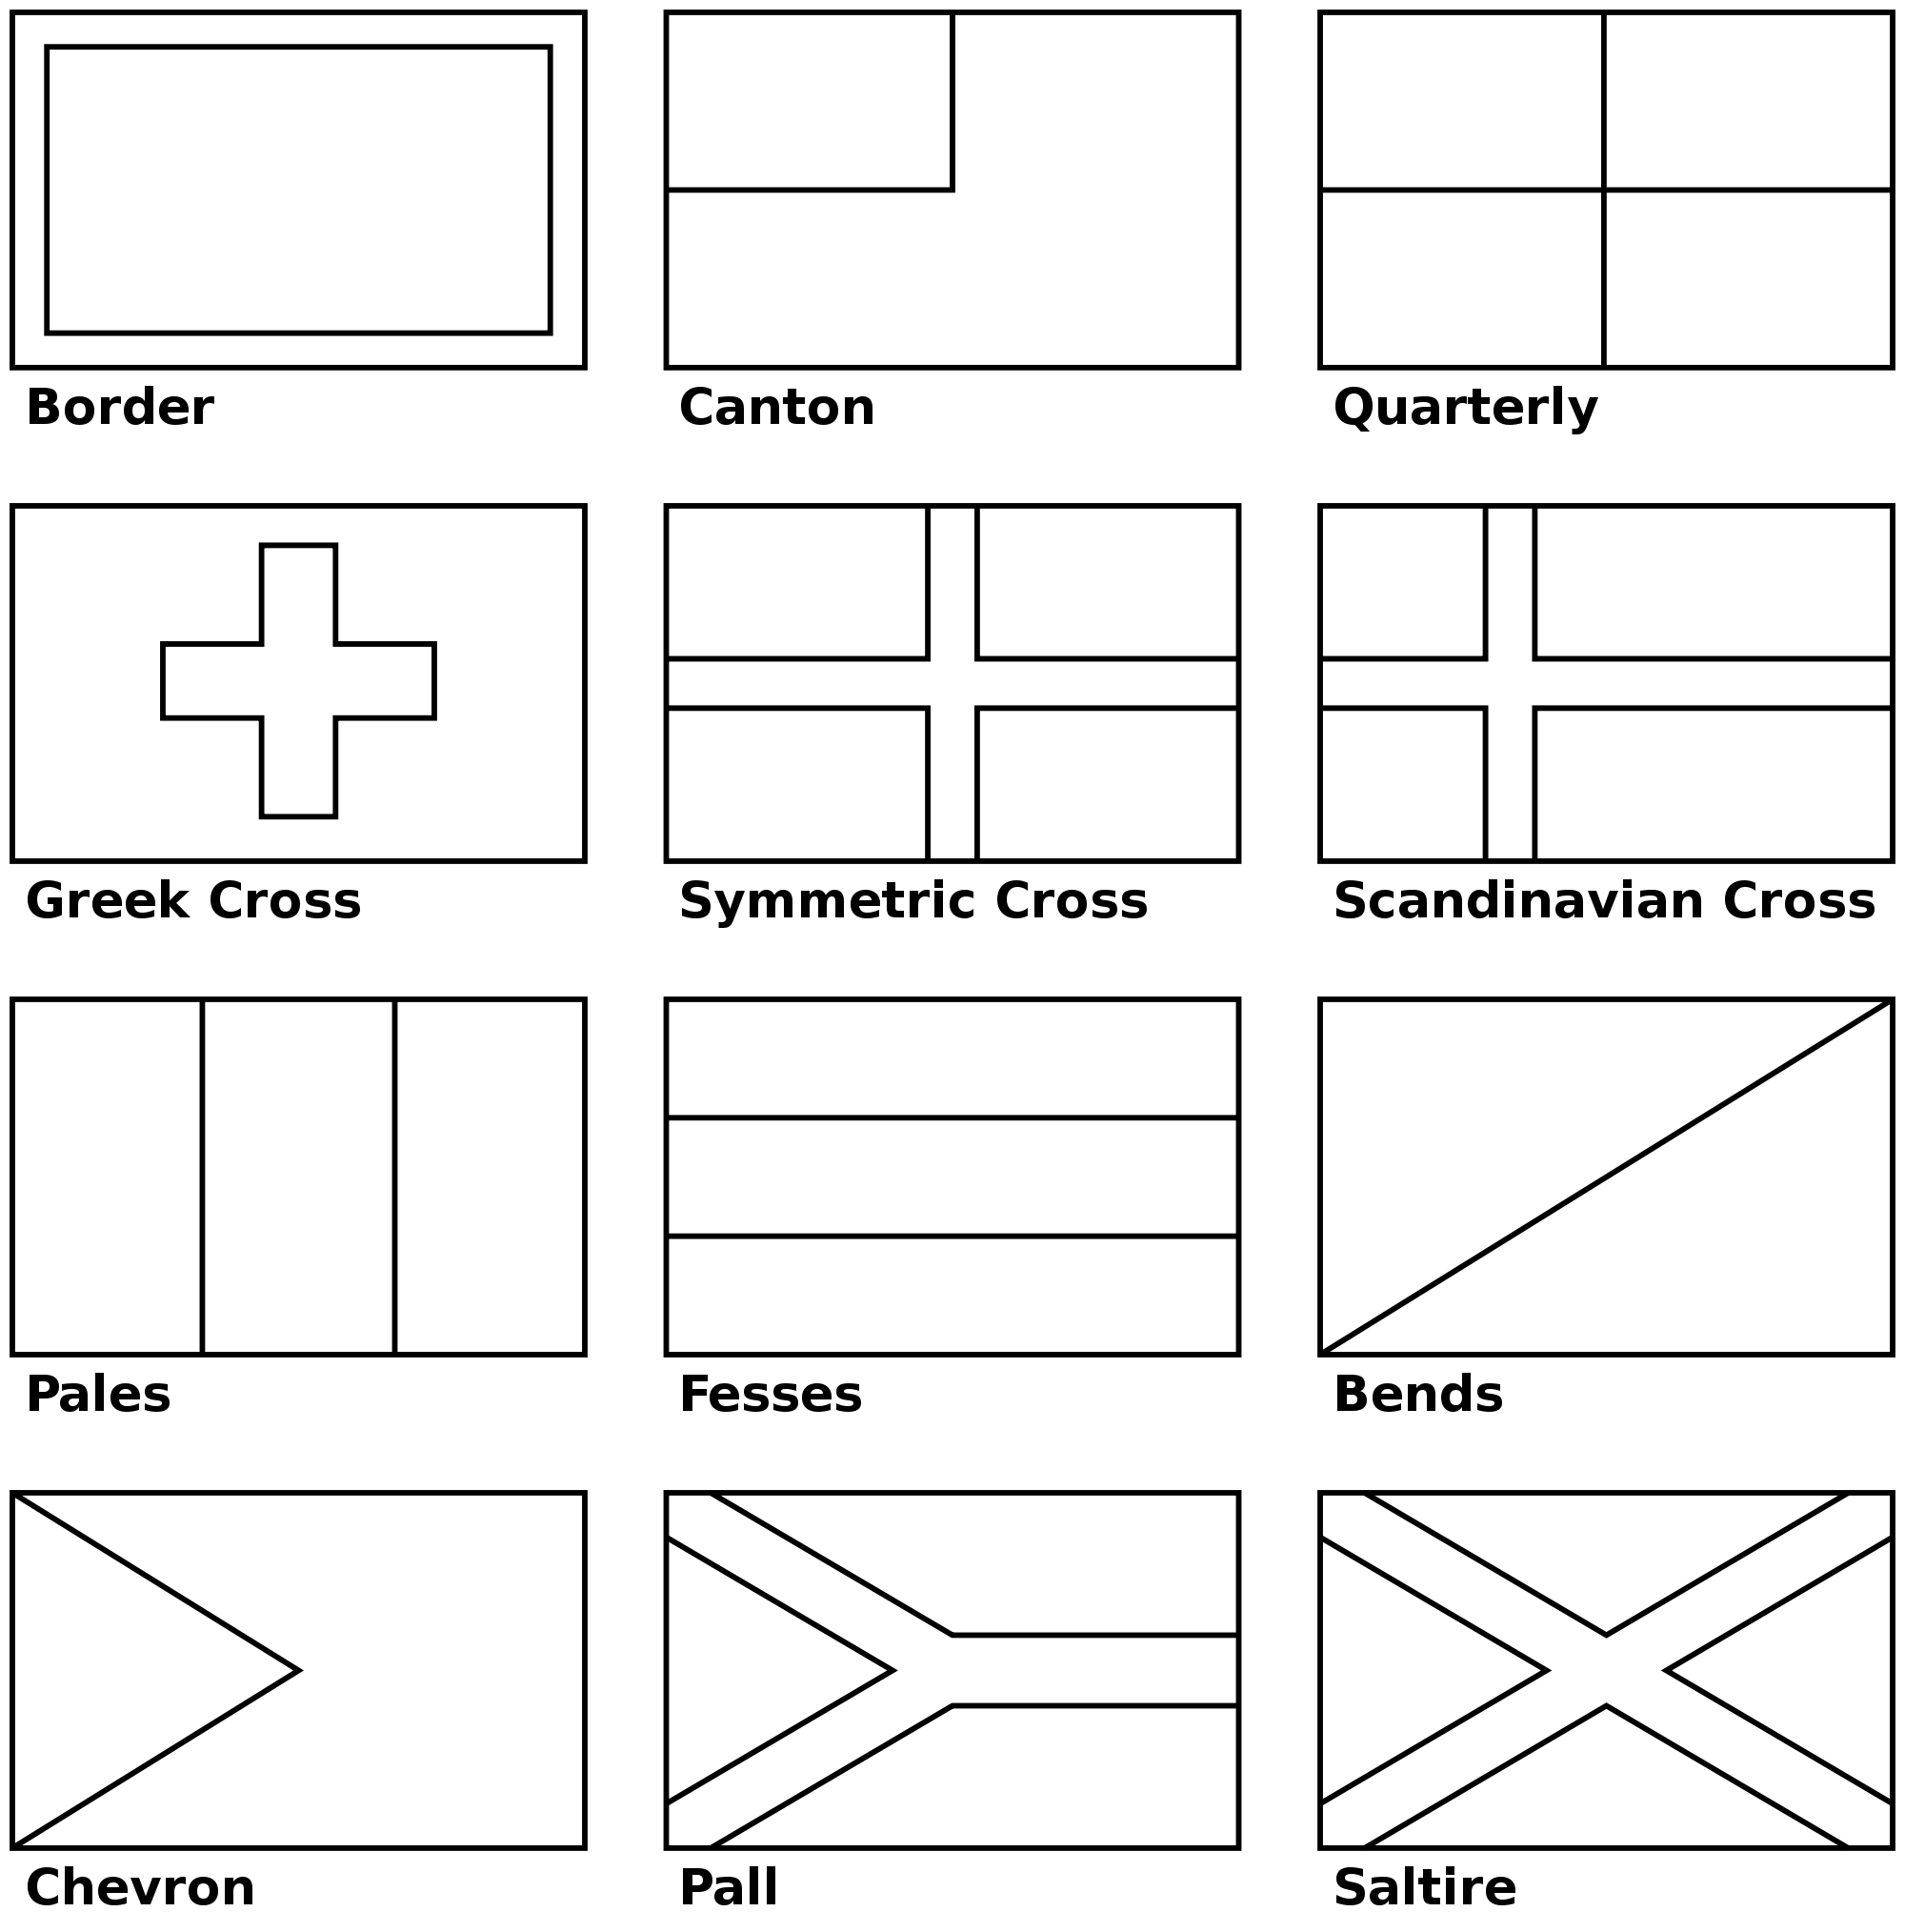 printable flags of the world to color printable coloring pages of flags around the world 5 flags world color the printable to of